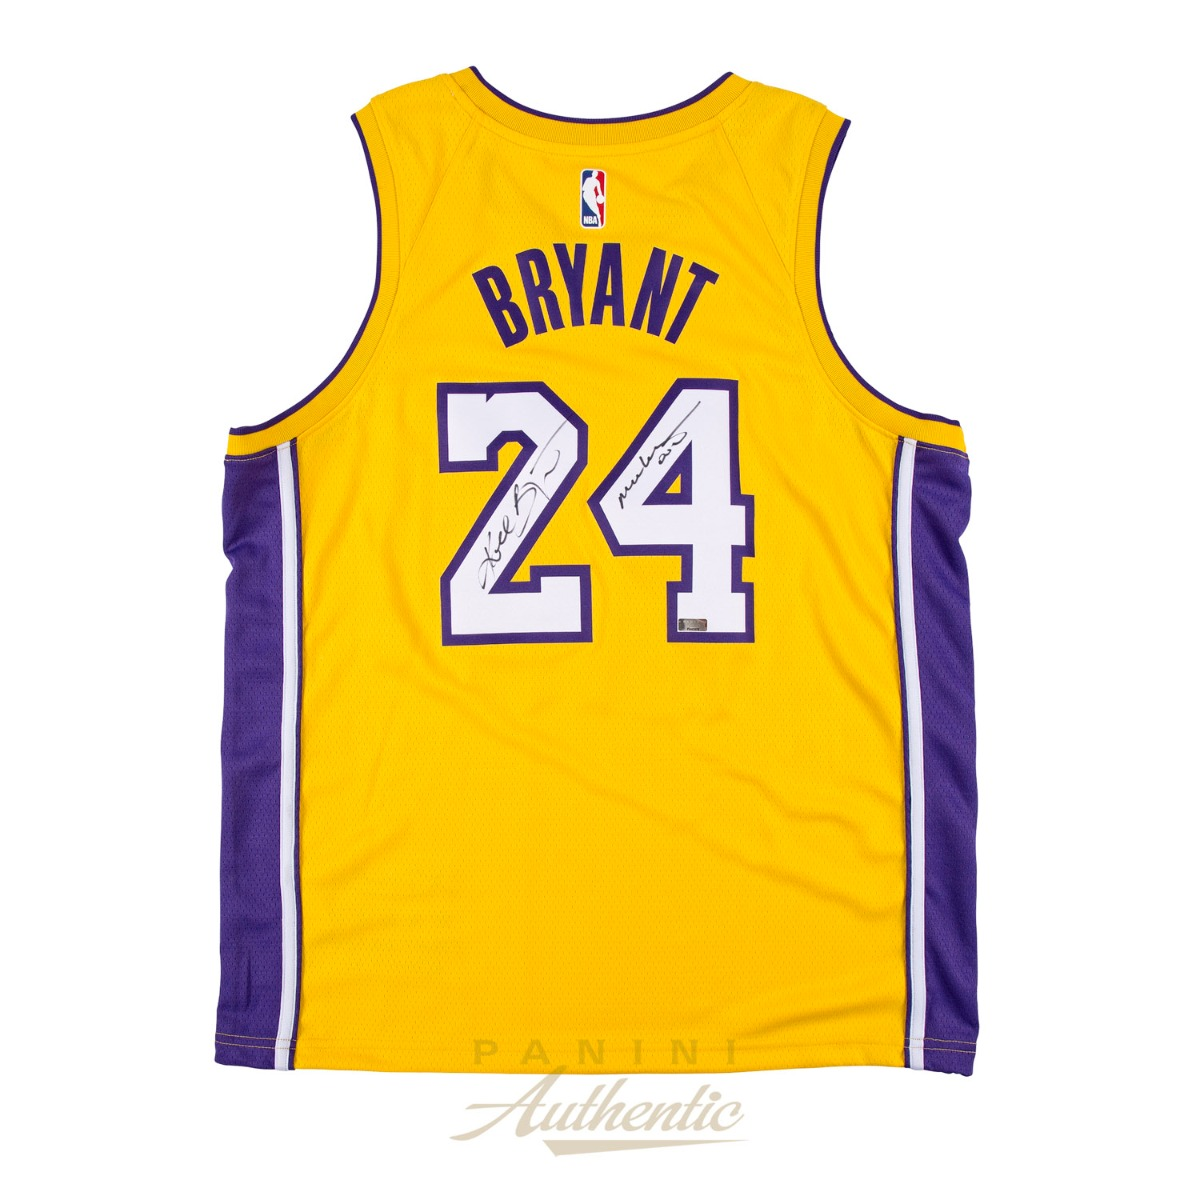 73fbaa28759 Kobe Bryant Autographed Gold Nike Retirement Ceremony Jersey with